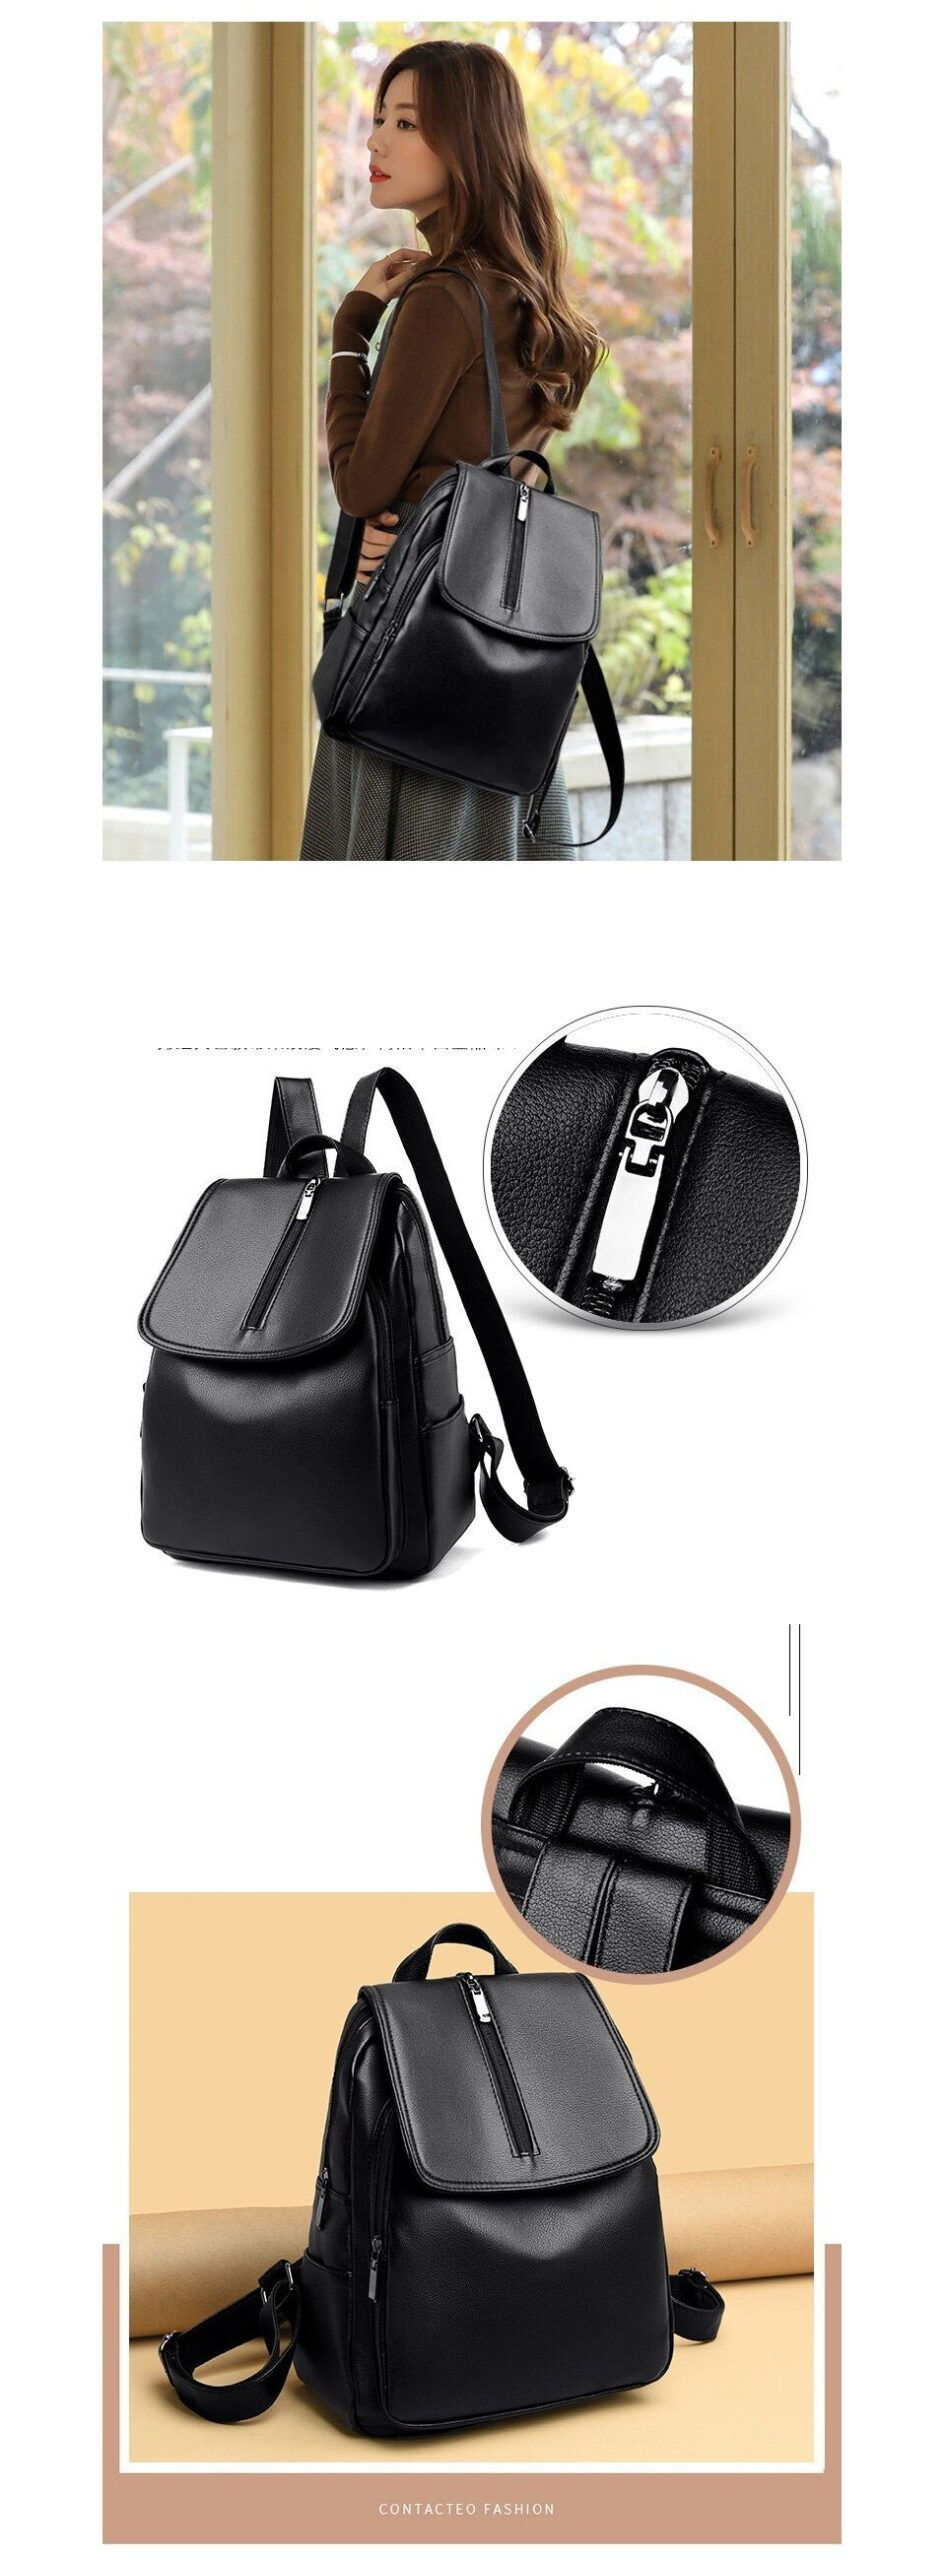 ACELURE Solid Color Soft PU Leather Large Casual Fashion Bags Zipper Backpacks Teenager High Capacity School Bags for Students